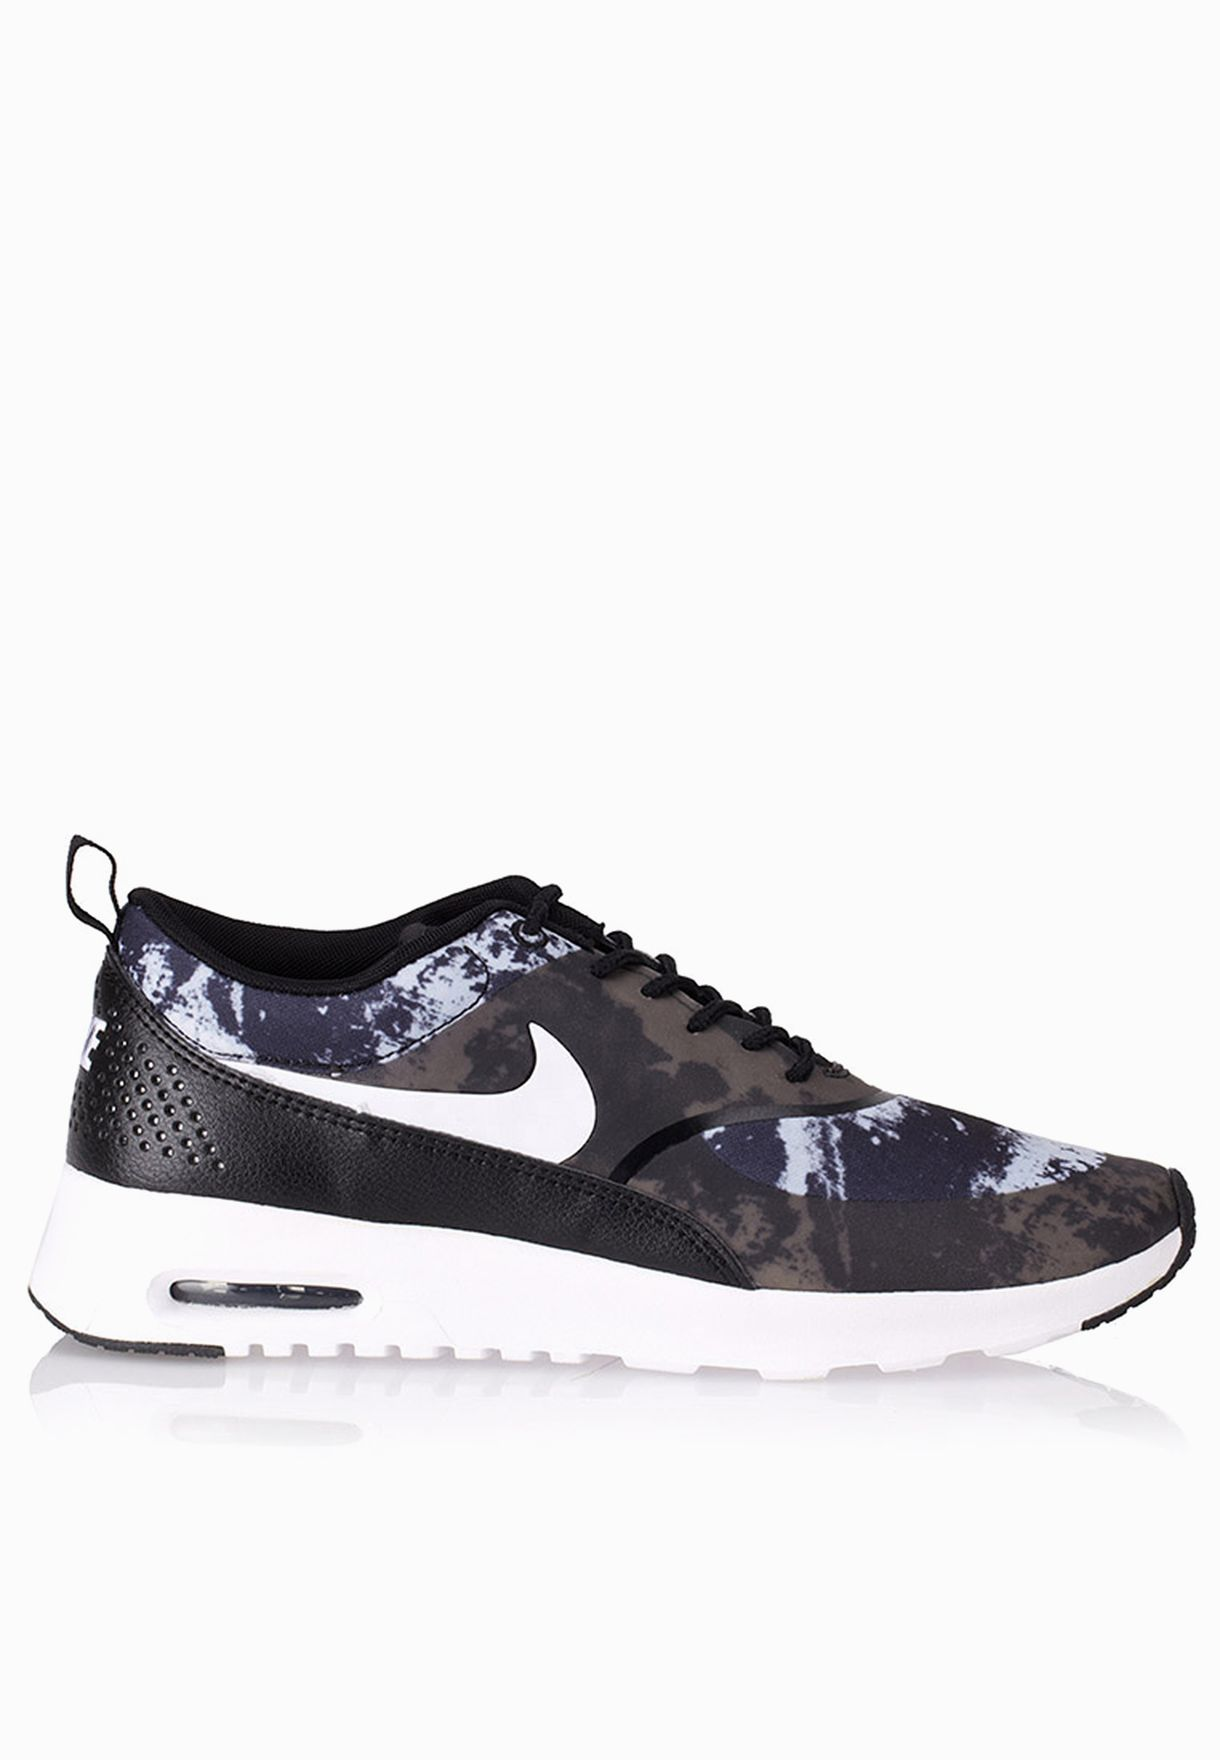 newest 7eebc 06a81 Air Max Thea Print Sneakers